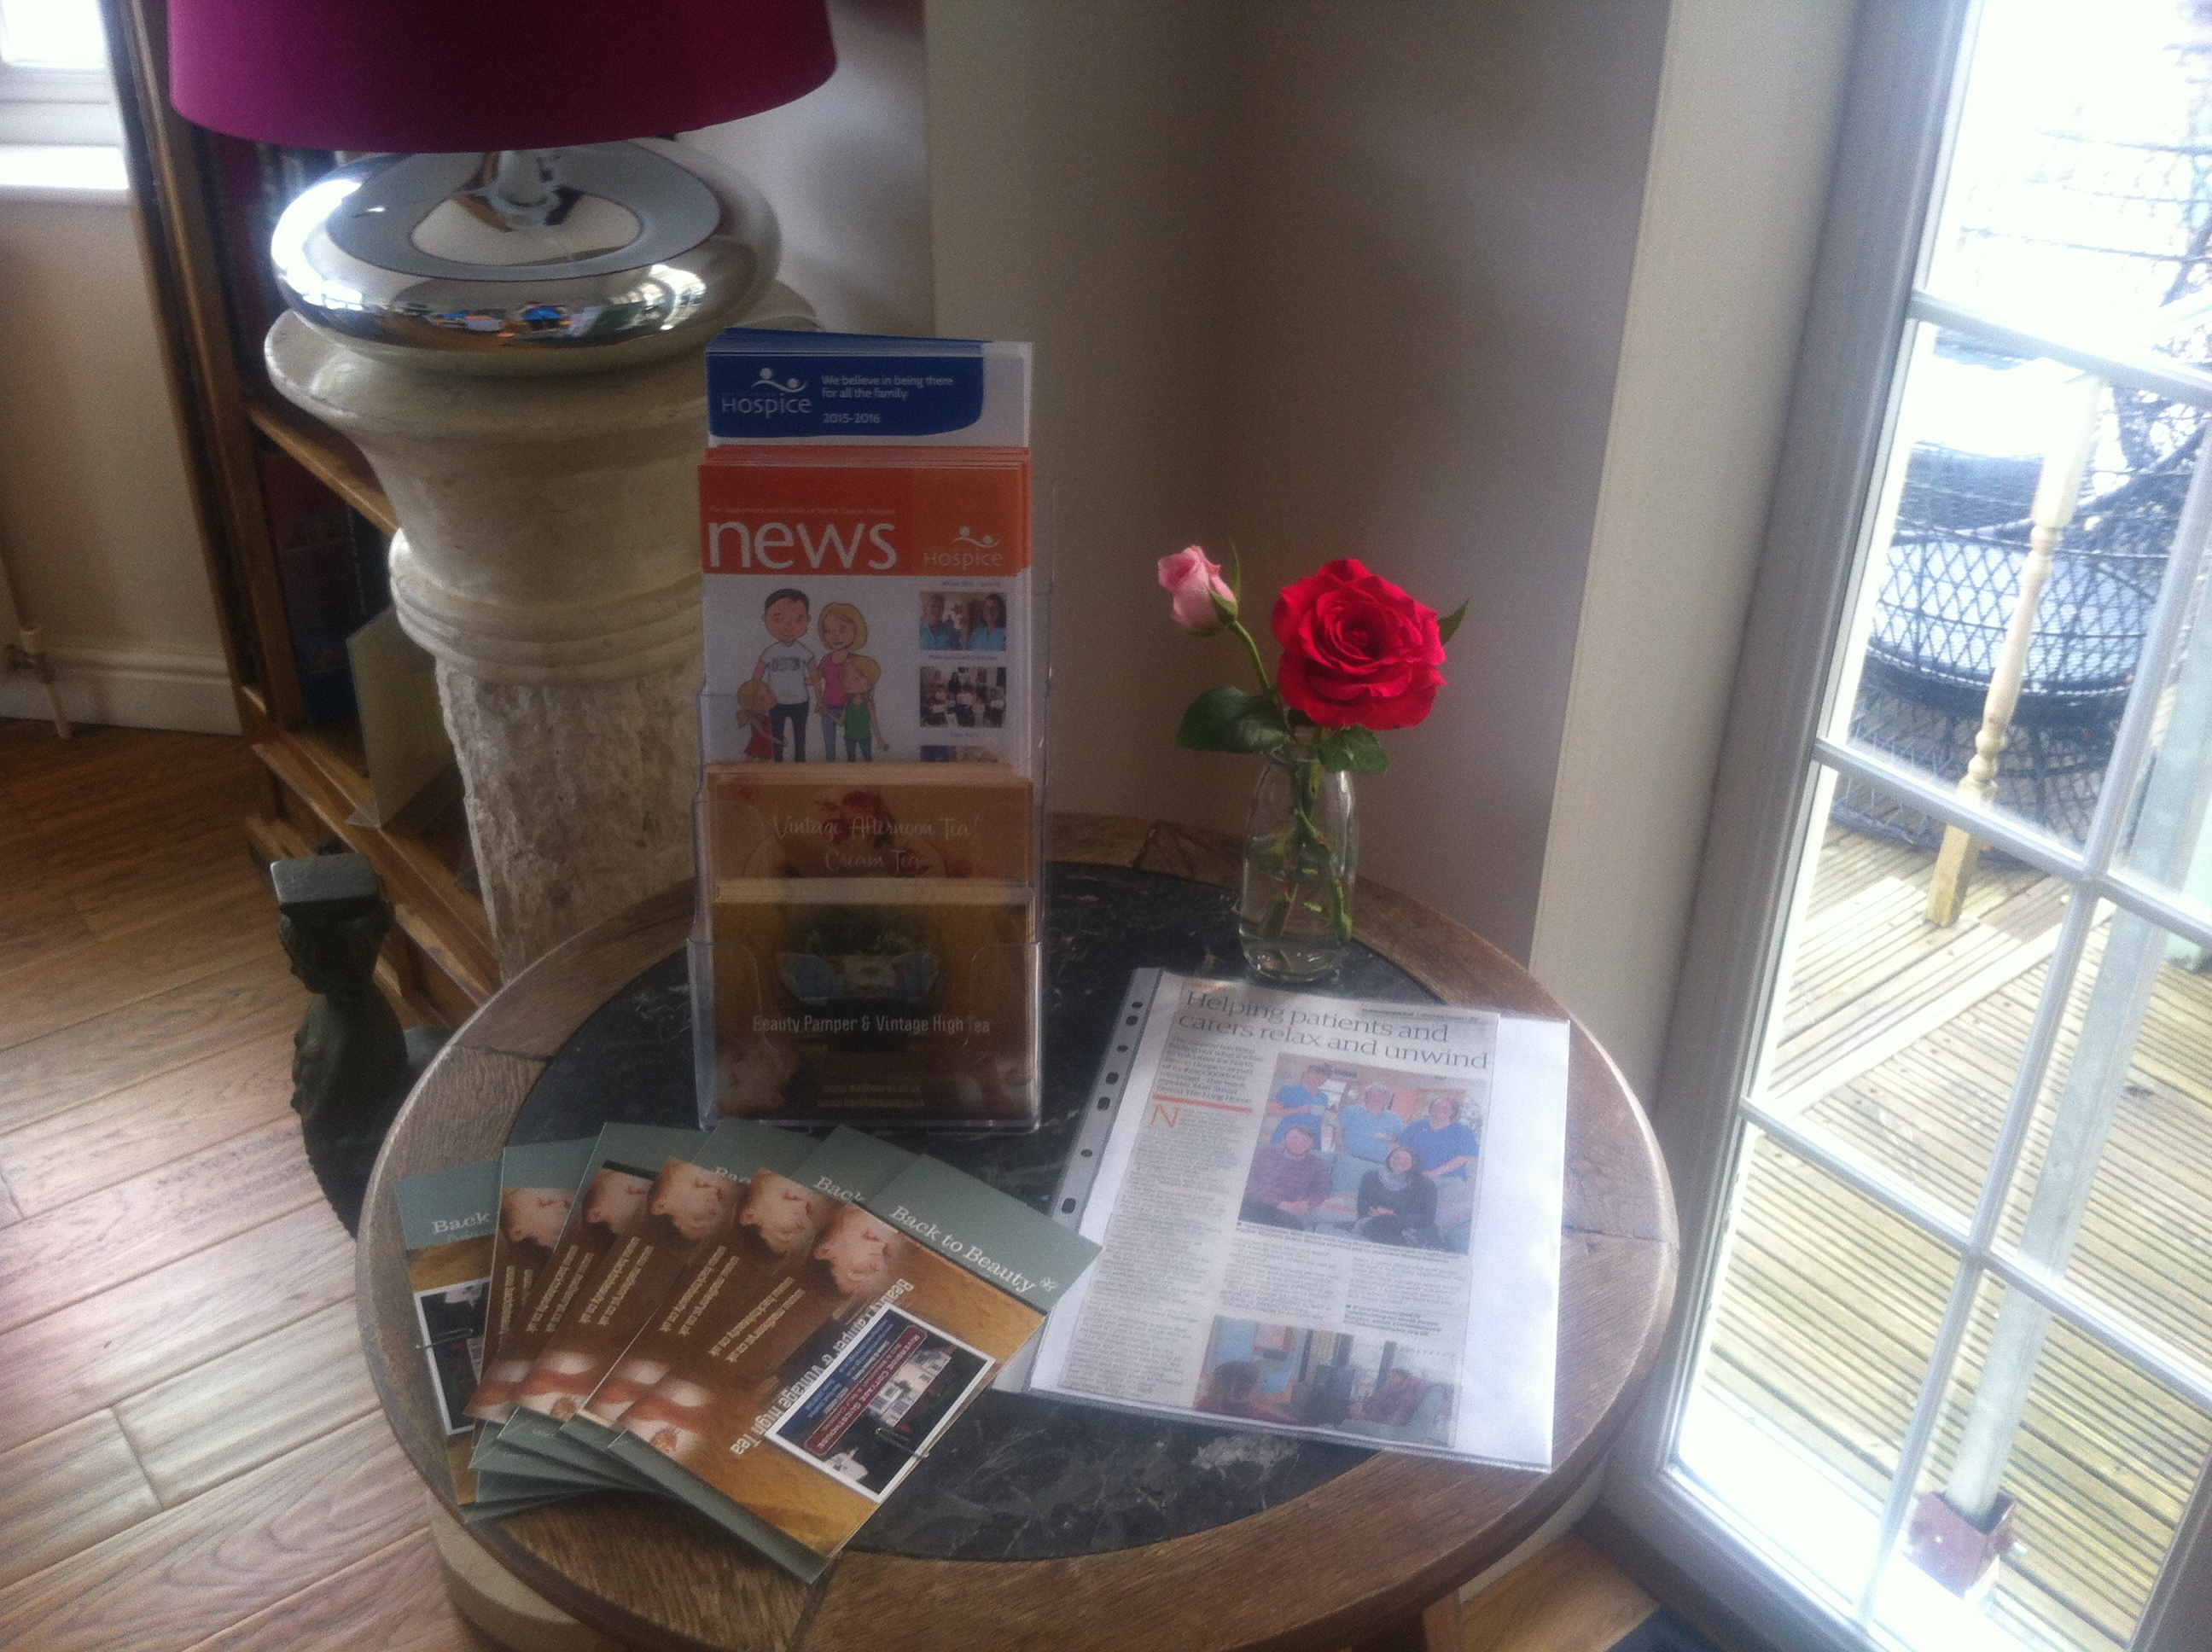 pamper special offers in conjunction with north devon hospice